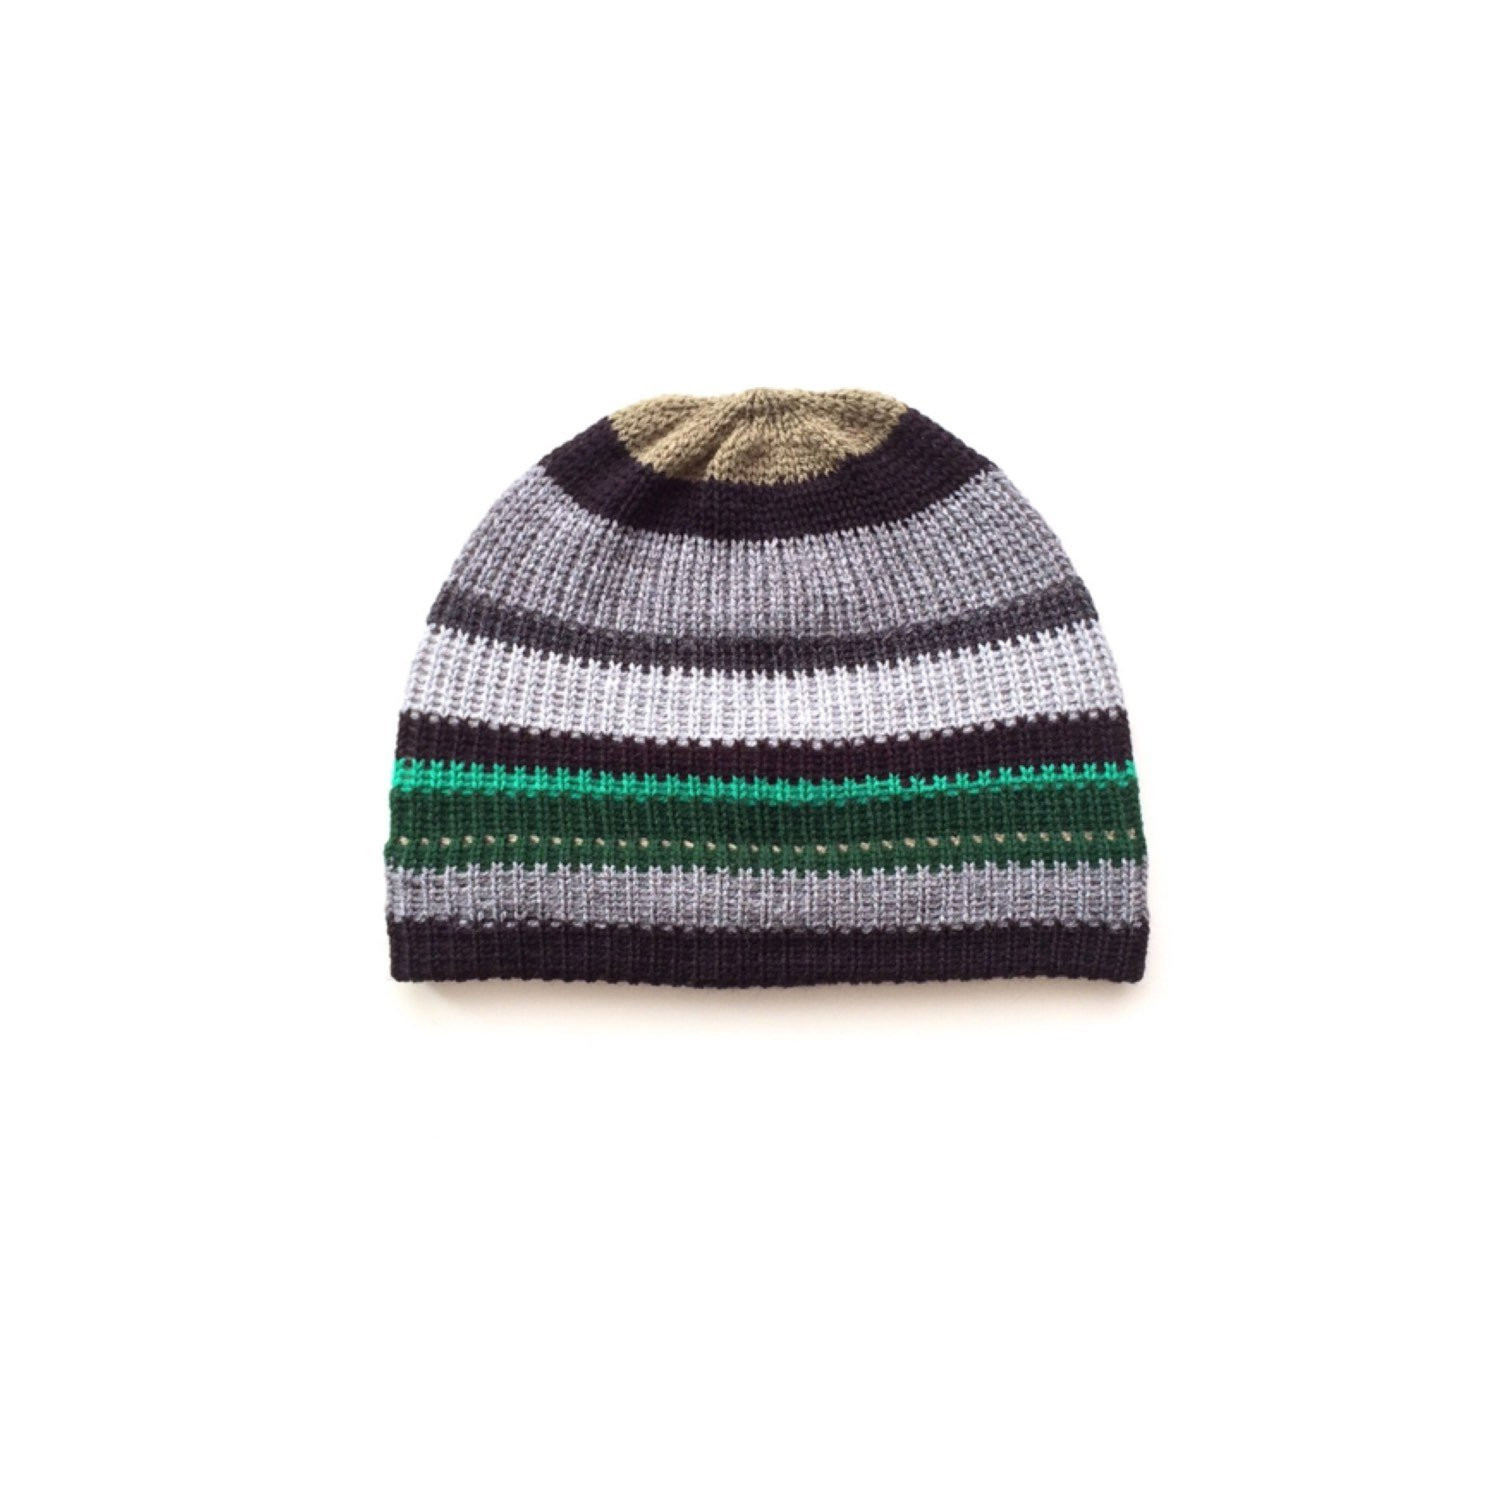 Mens Knit Beanie Beautiful Mens Beanie Knit Hat Striped Winter Hat Knit Accessory Free Of Attractive 42 Images Mens Knit Beanie